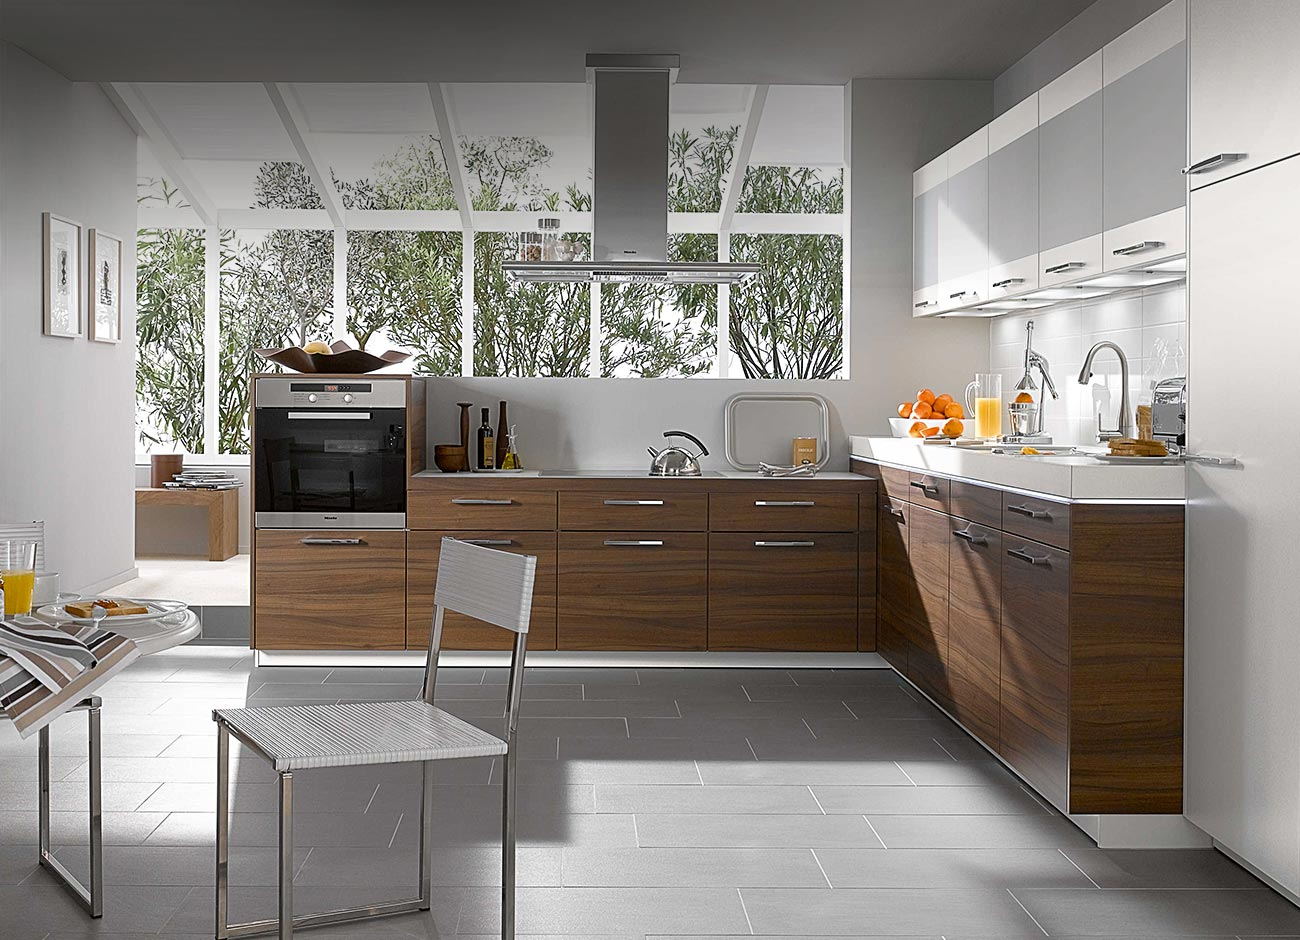 Home Wall Decoration: Compact Kitchen Design